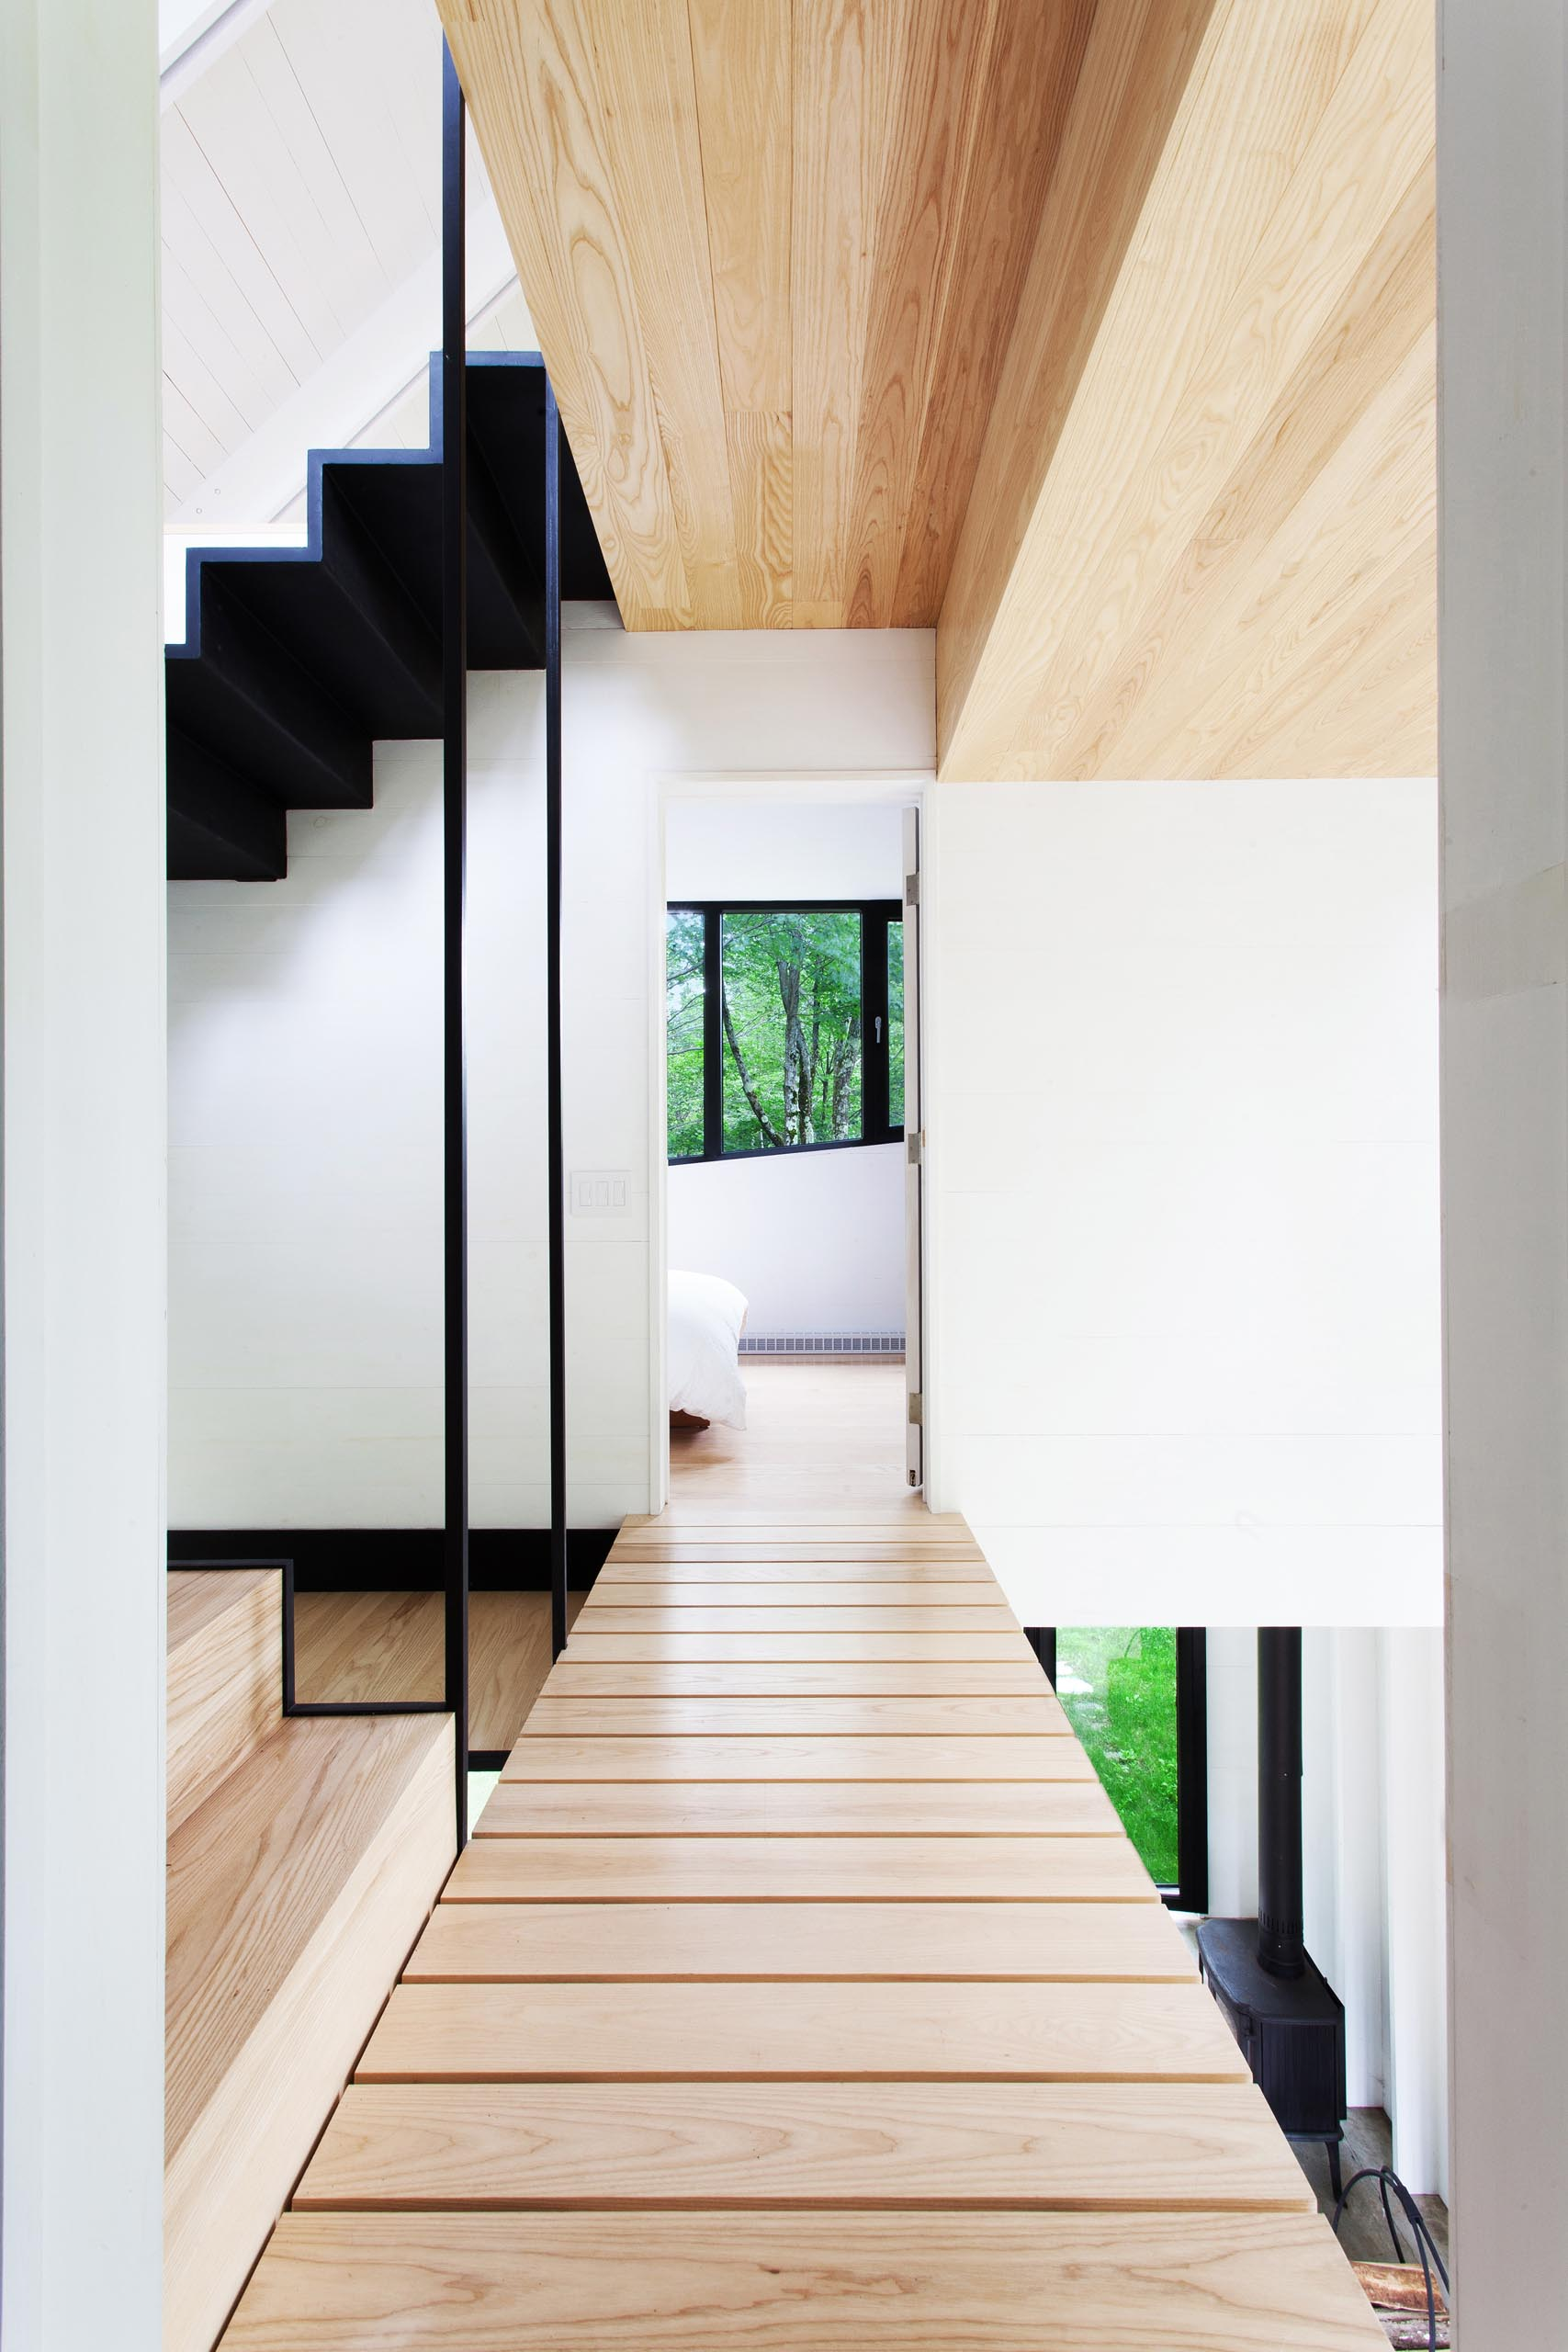 A small cottage with interior wood bridges / walkways.